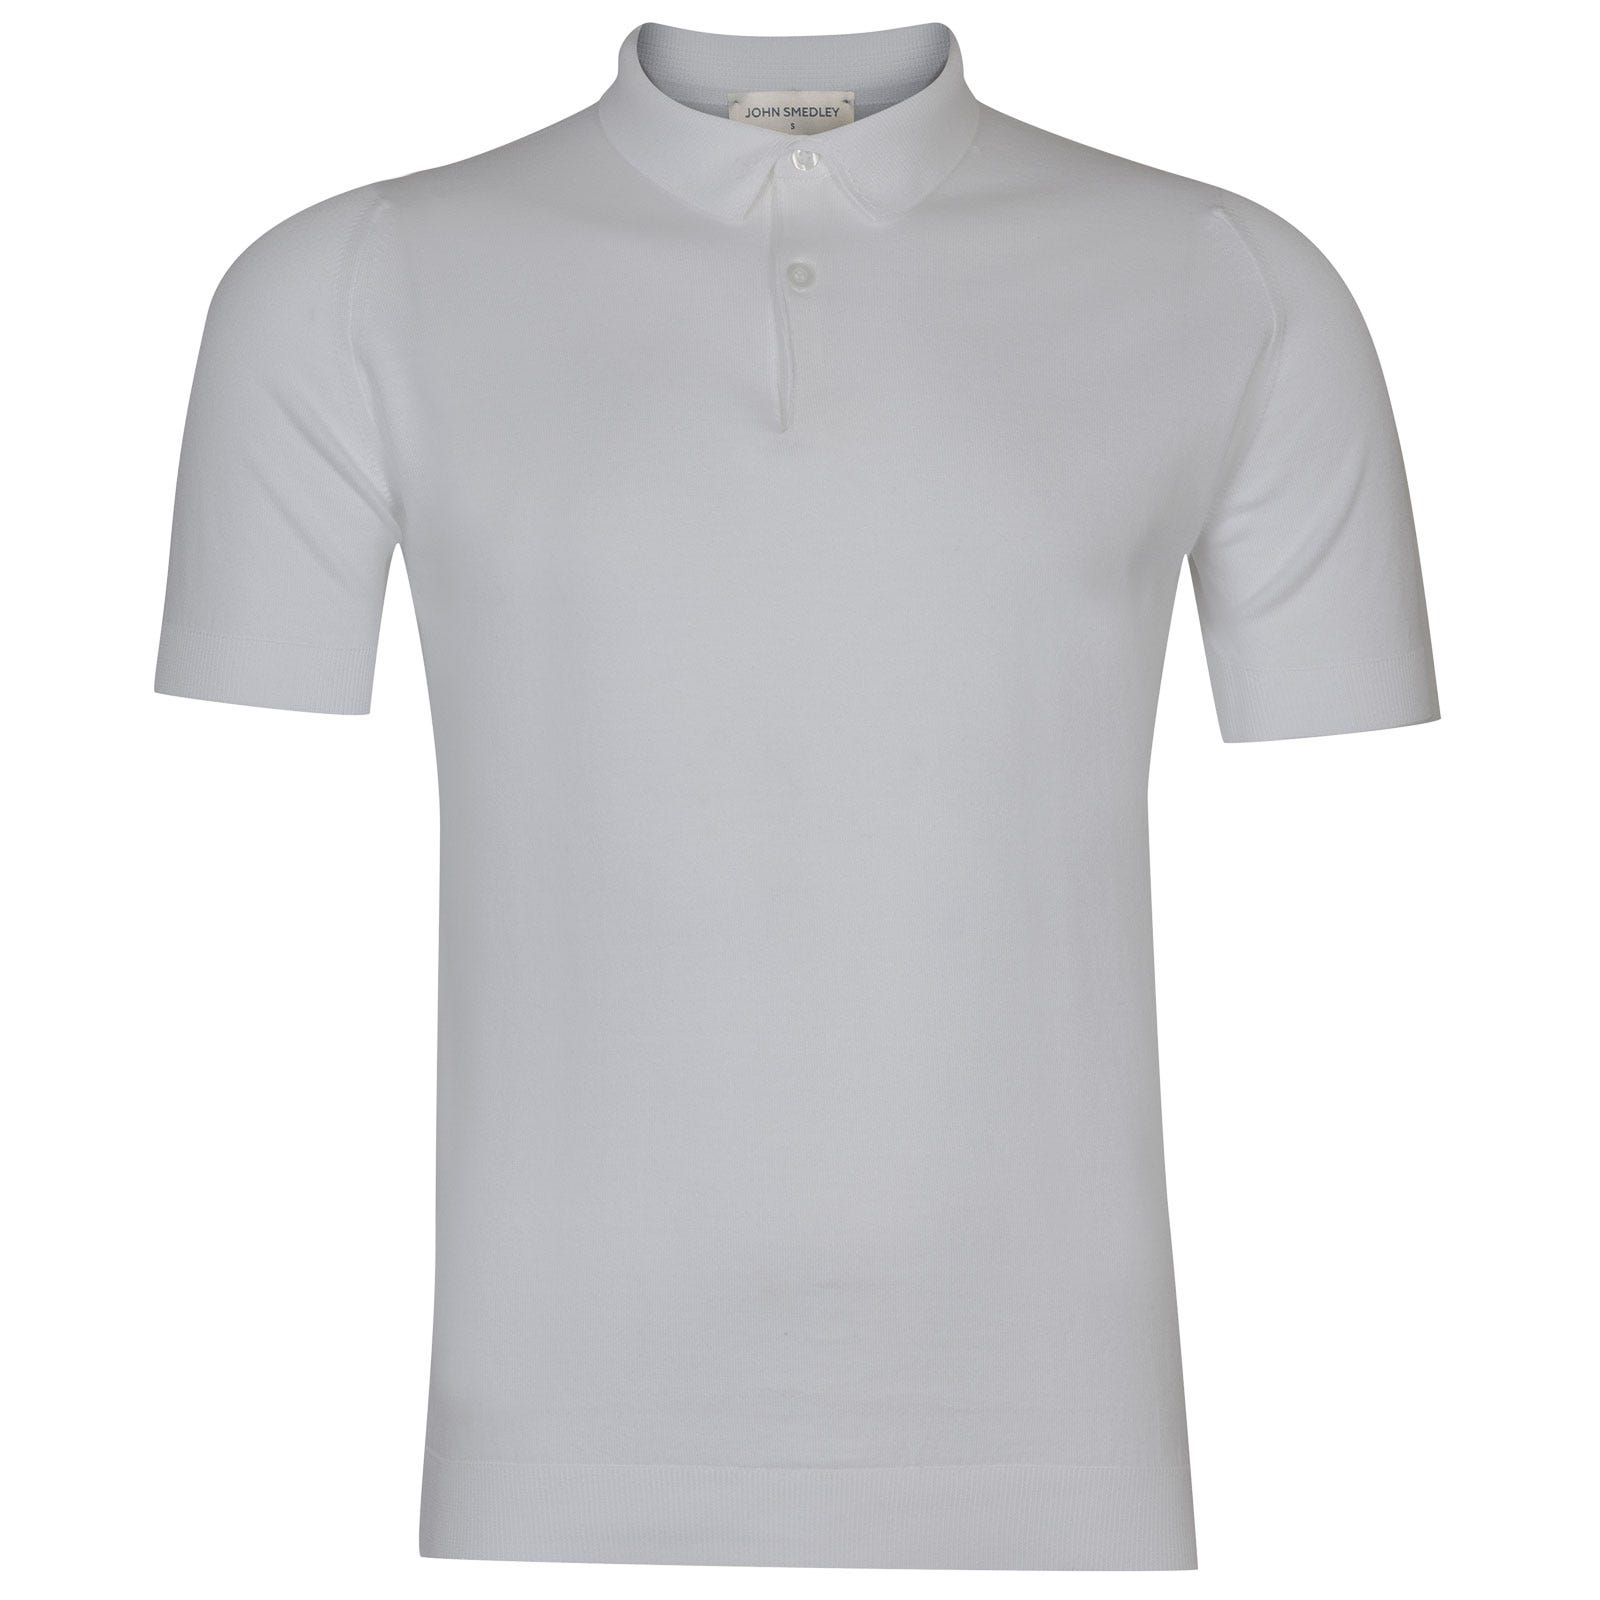 John Smedley rhodes Sea Island Cotton Shirt in white-S